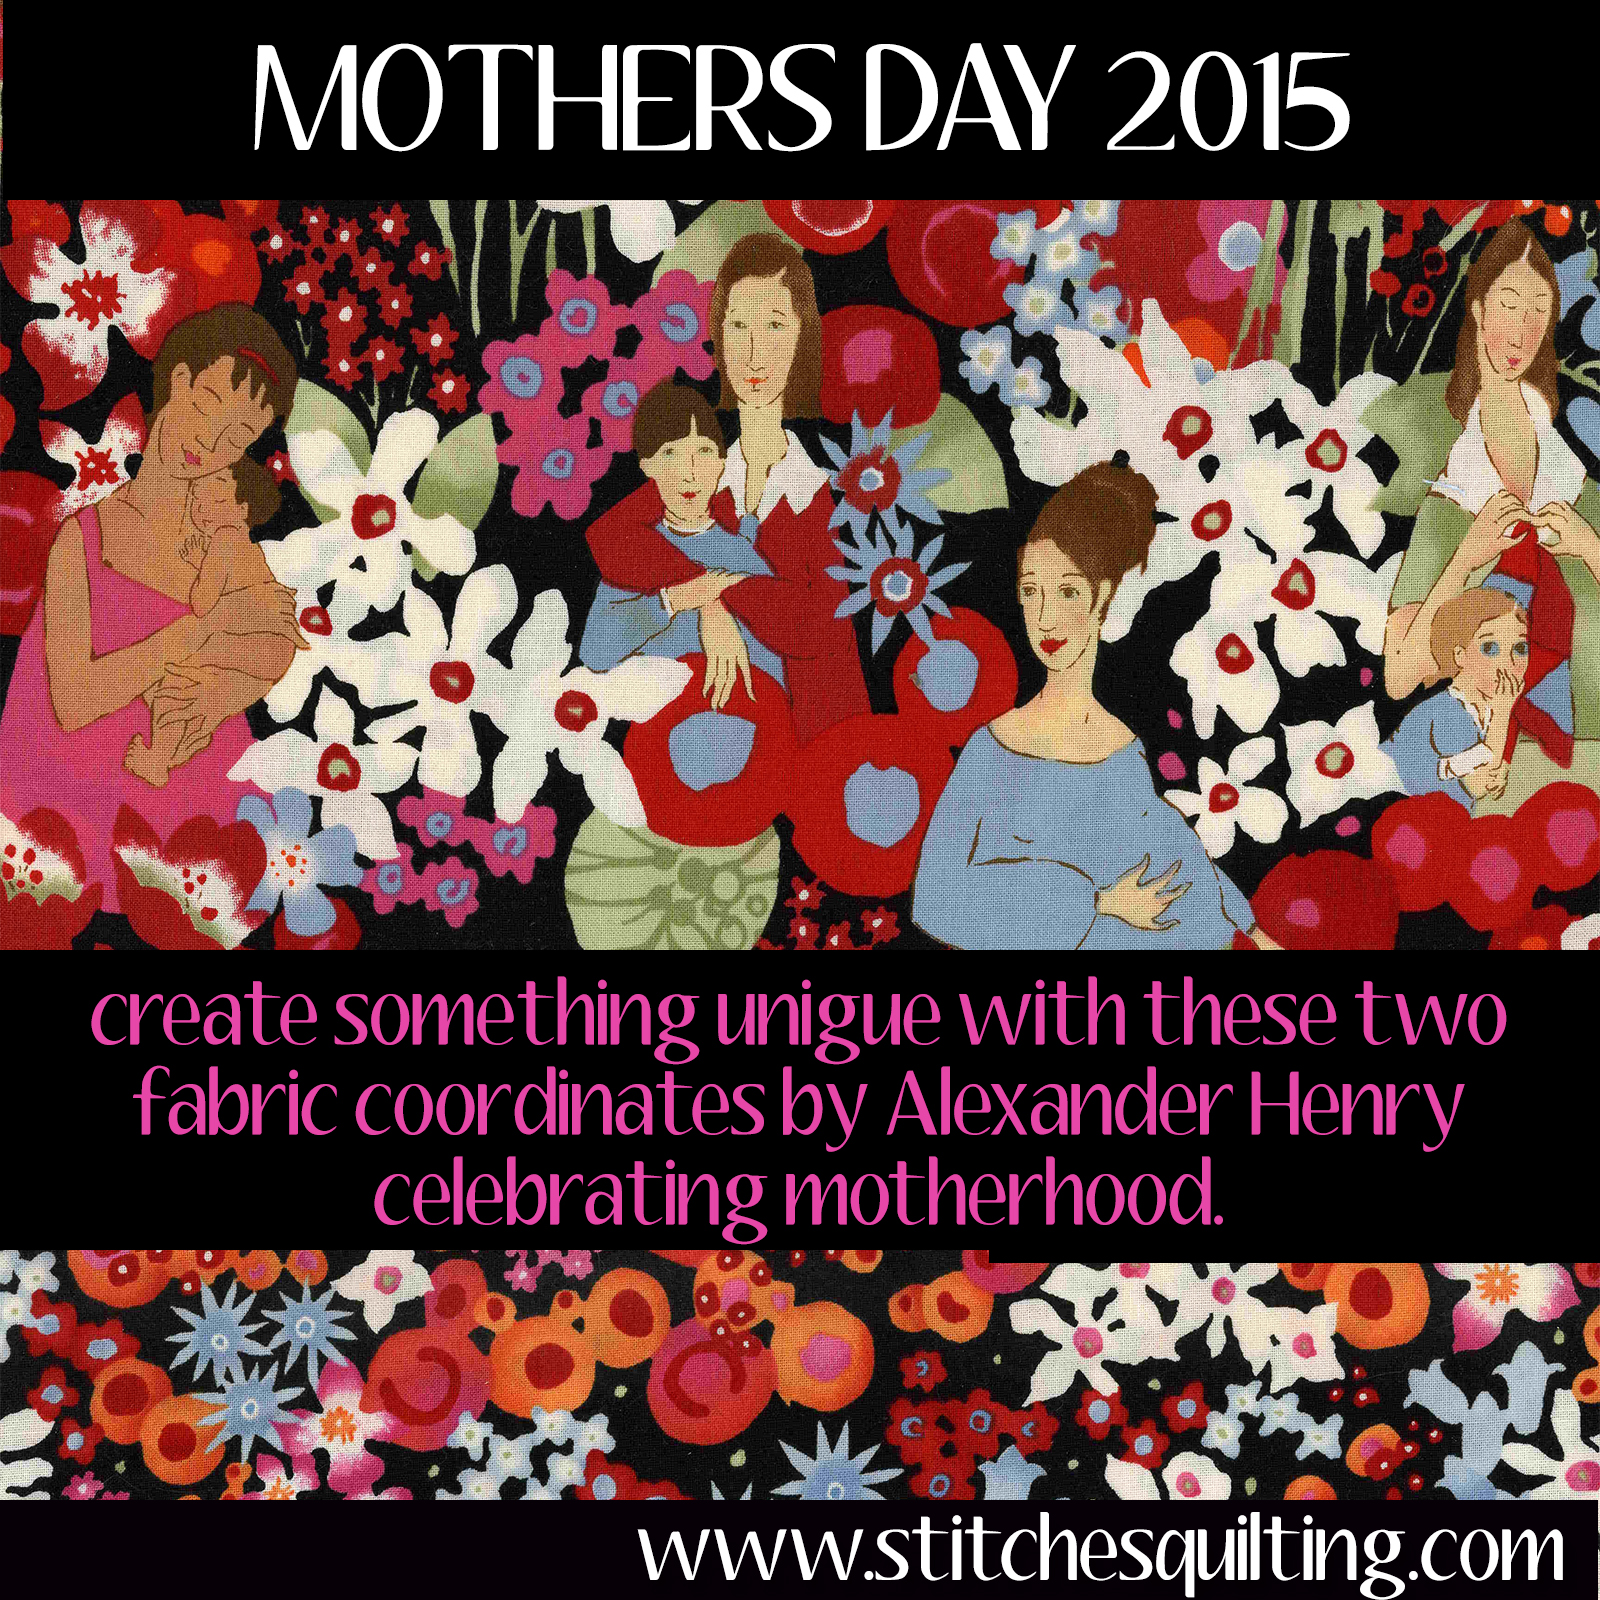 Mothers Day 2015 gift